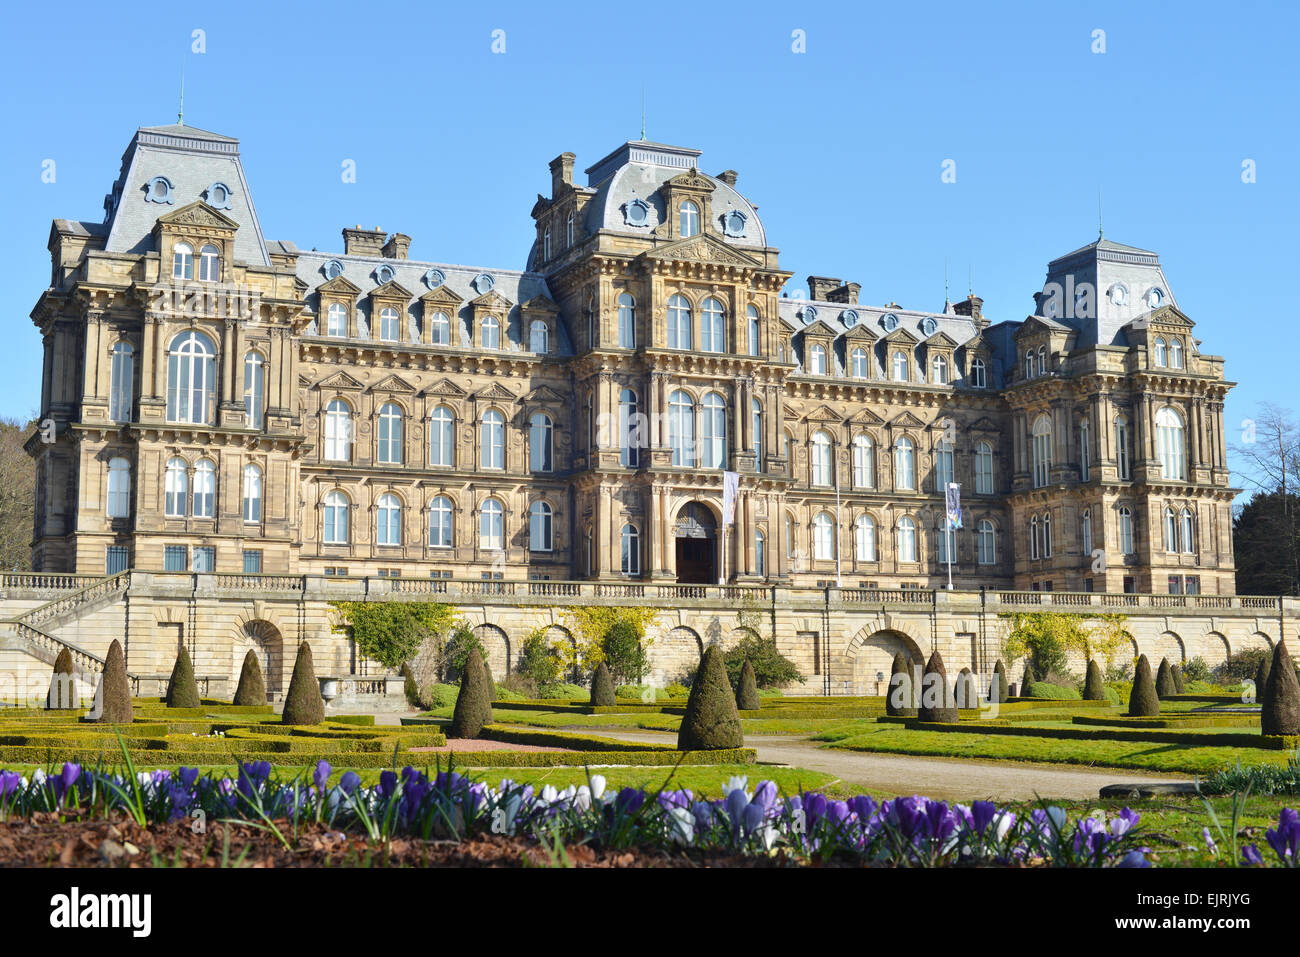 Bowes Museum at Barnard Castle in County Durham, UK - Stock Image